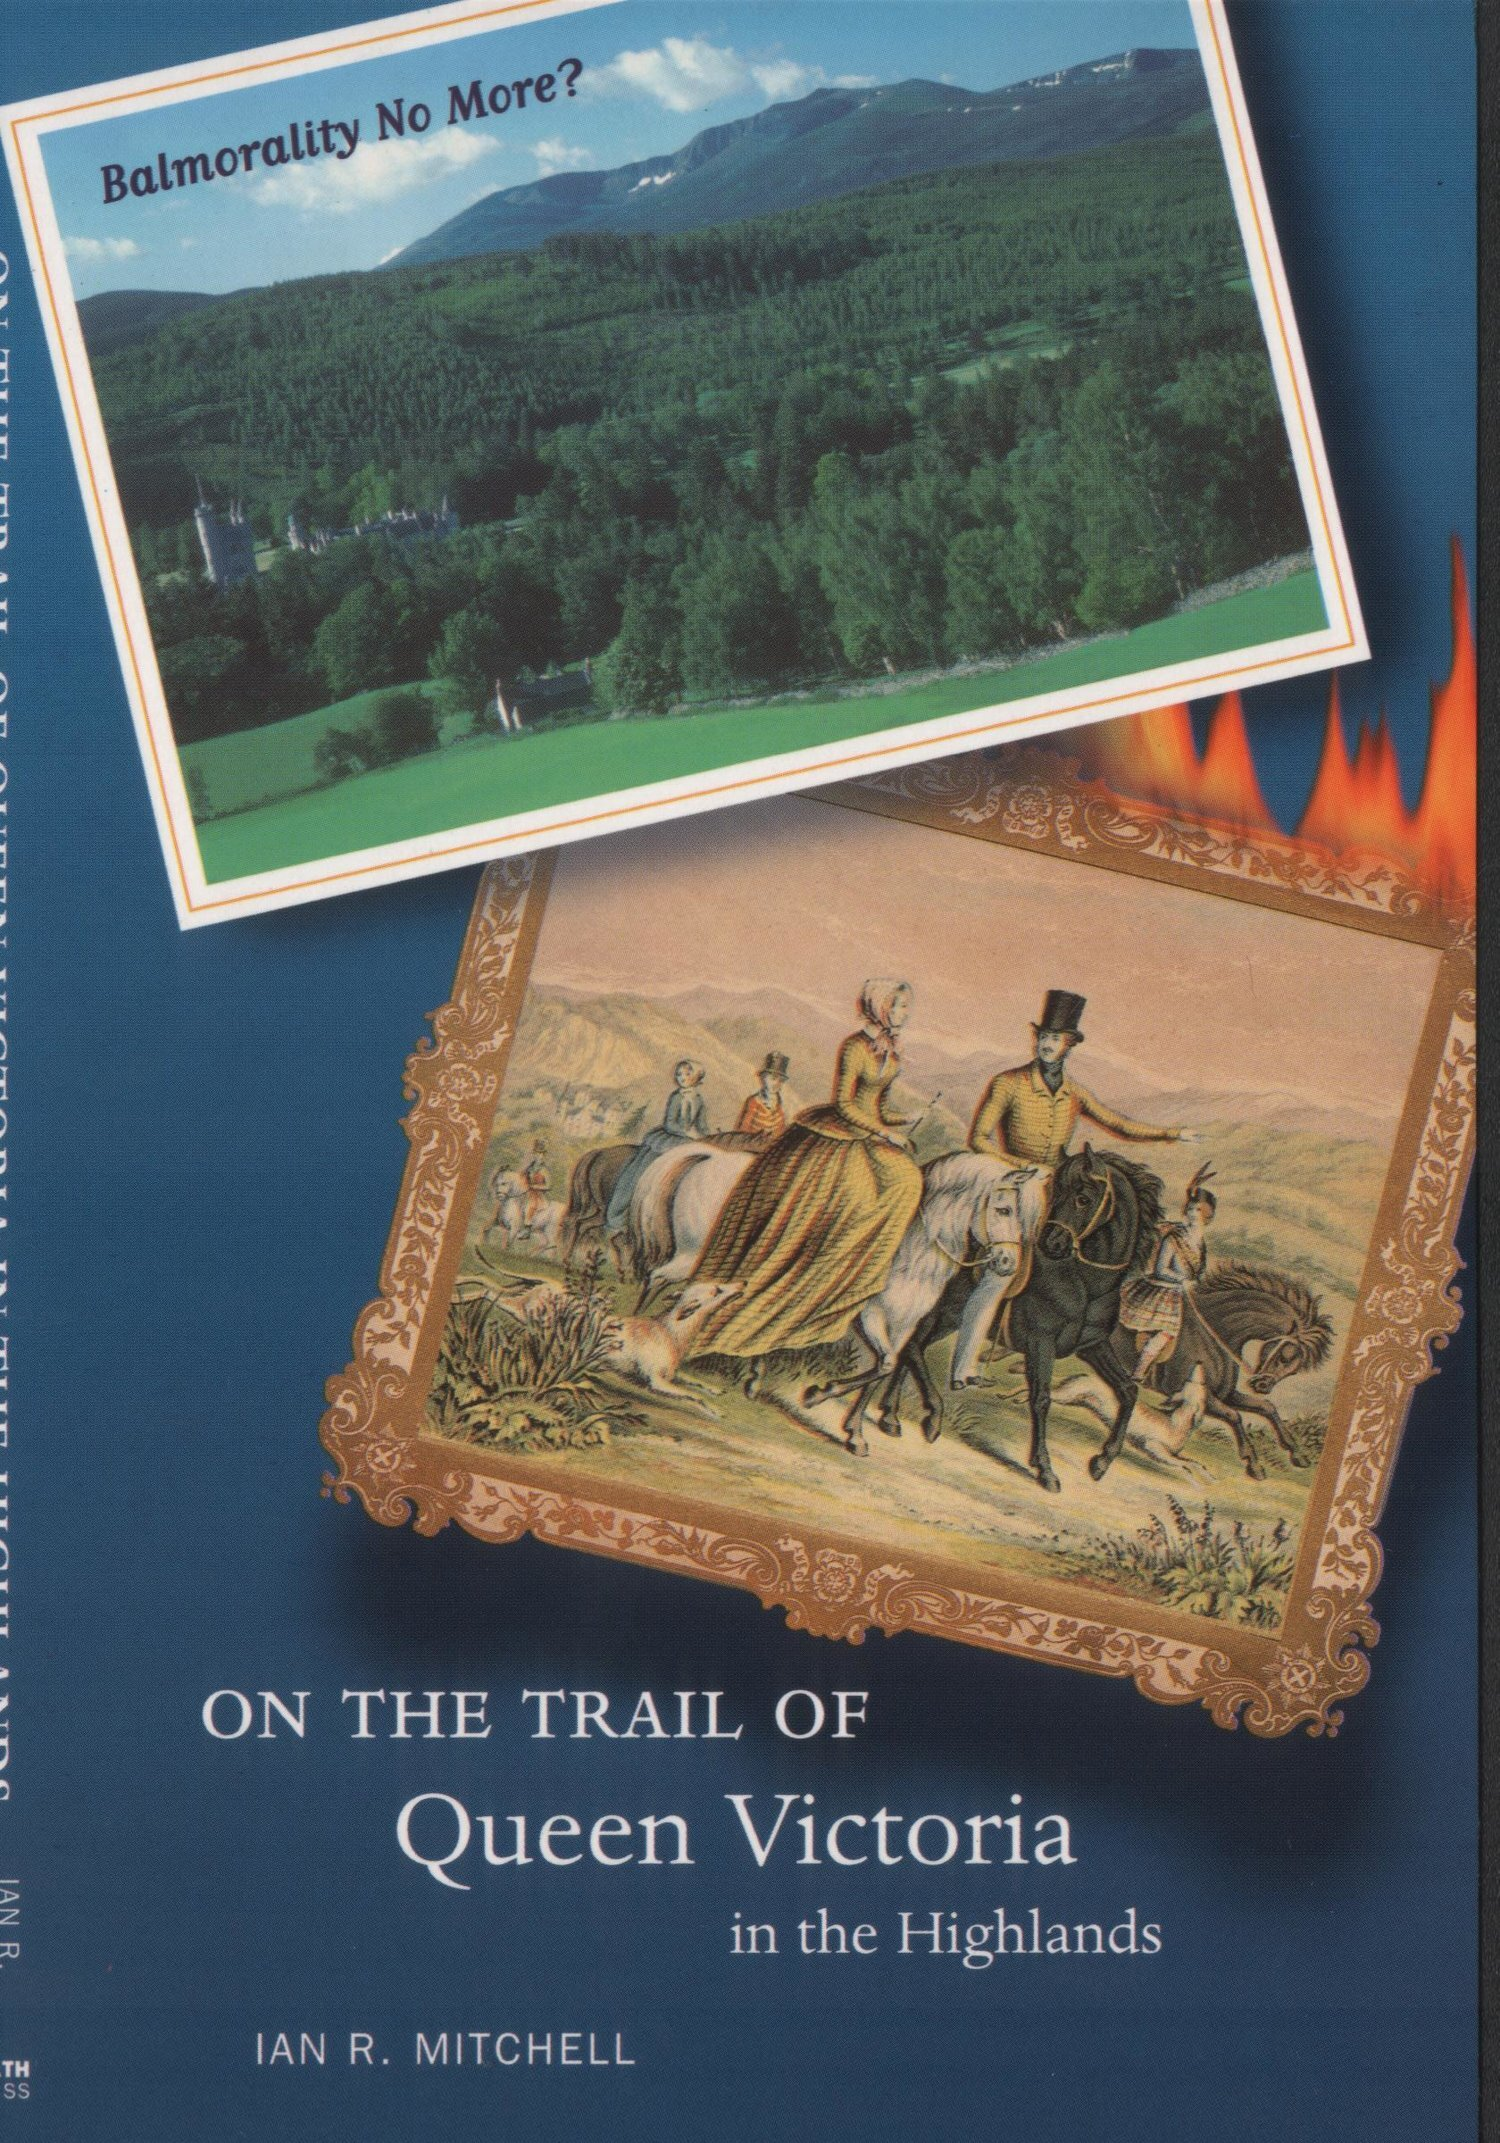 On the Trail of Queen+Victoria Luath Press.jpg